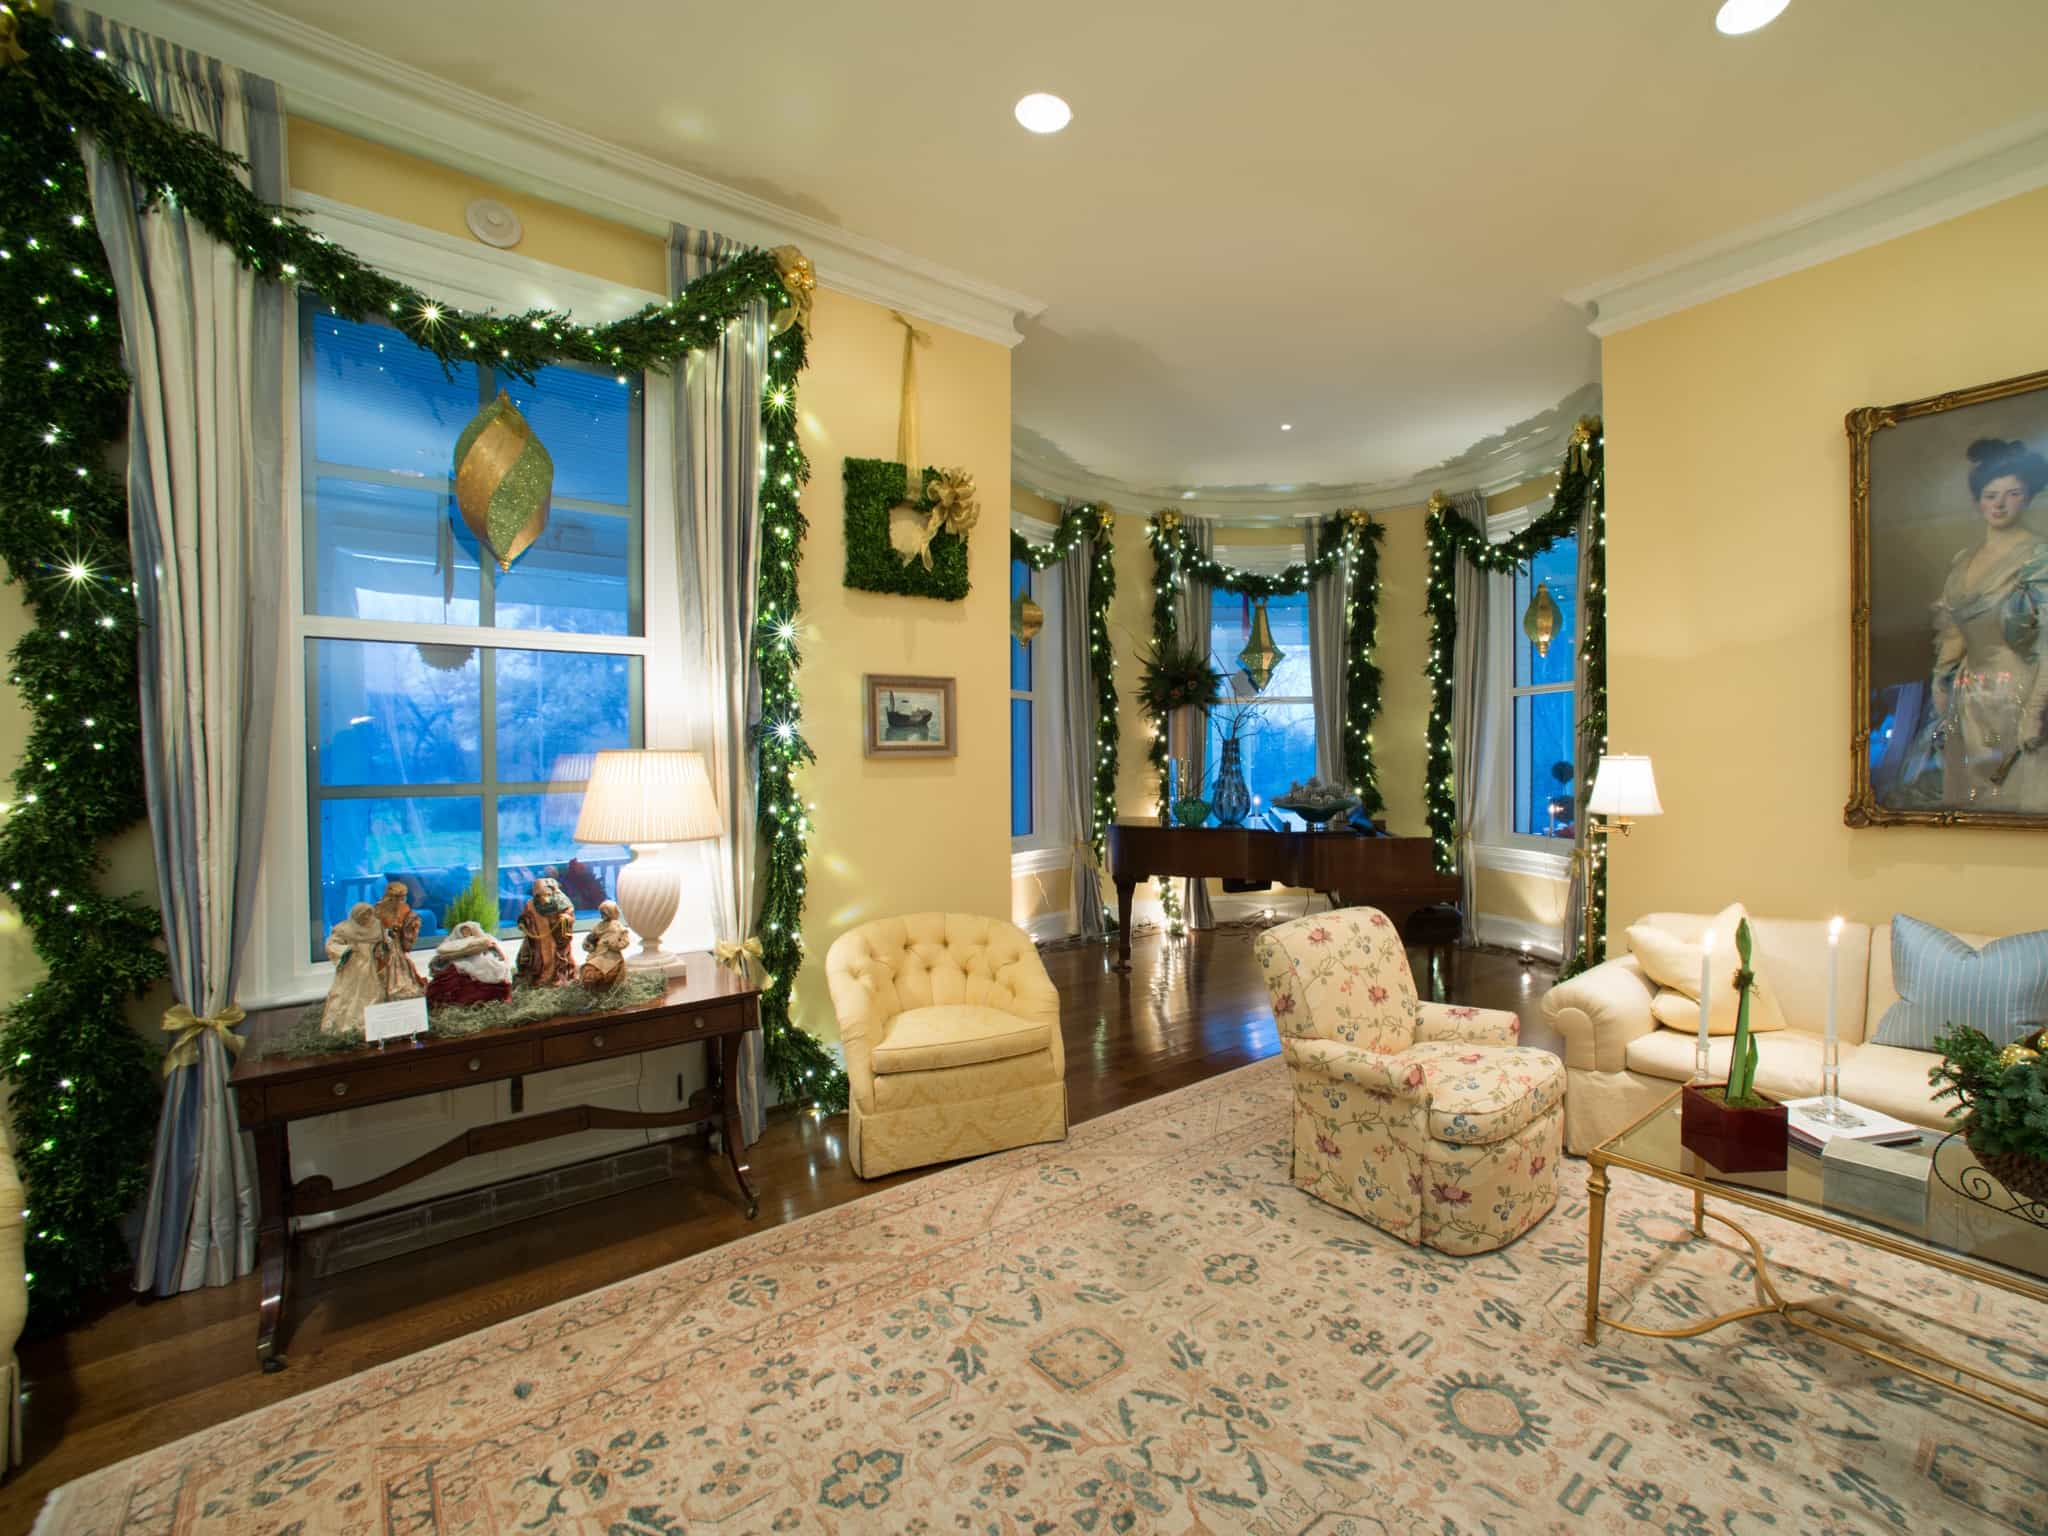 Christmas Valances Window Treatments (View 15 of 20)